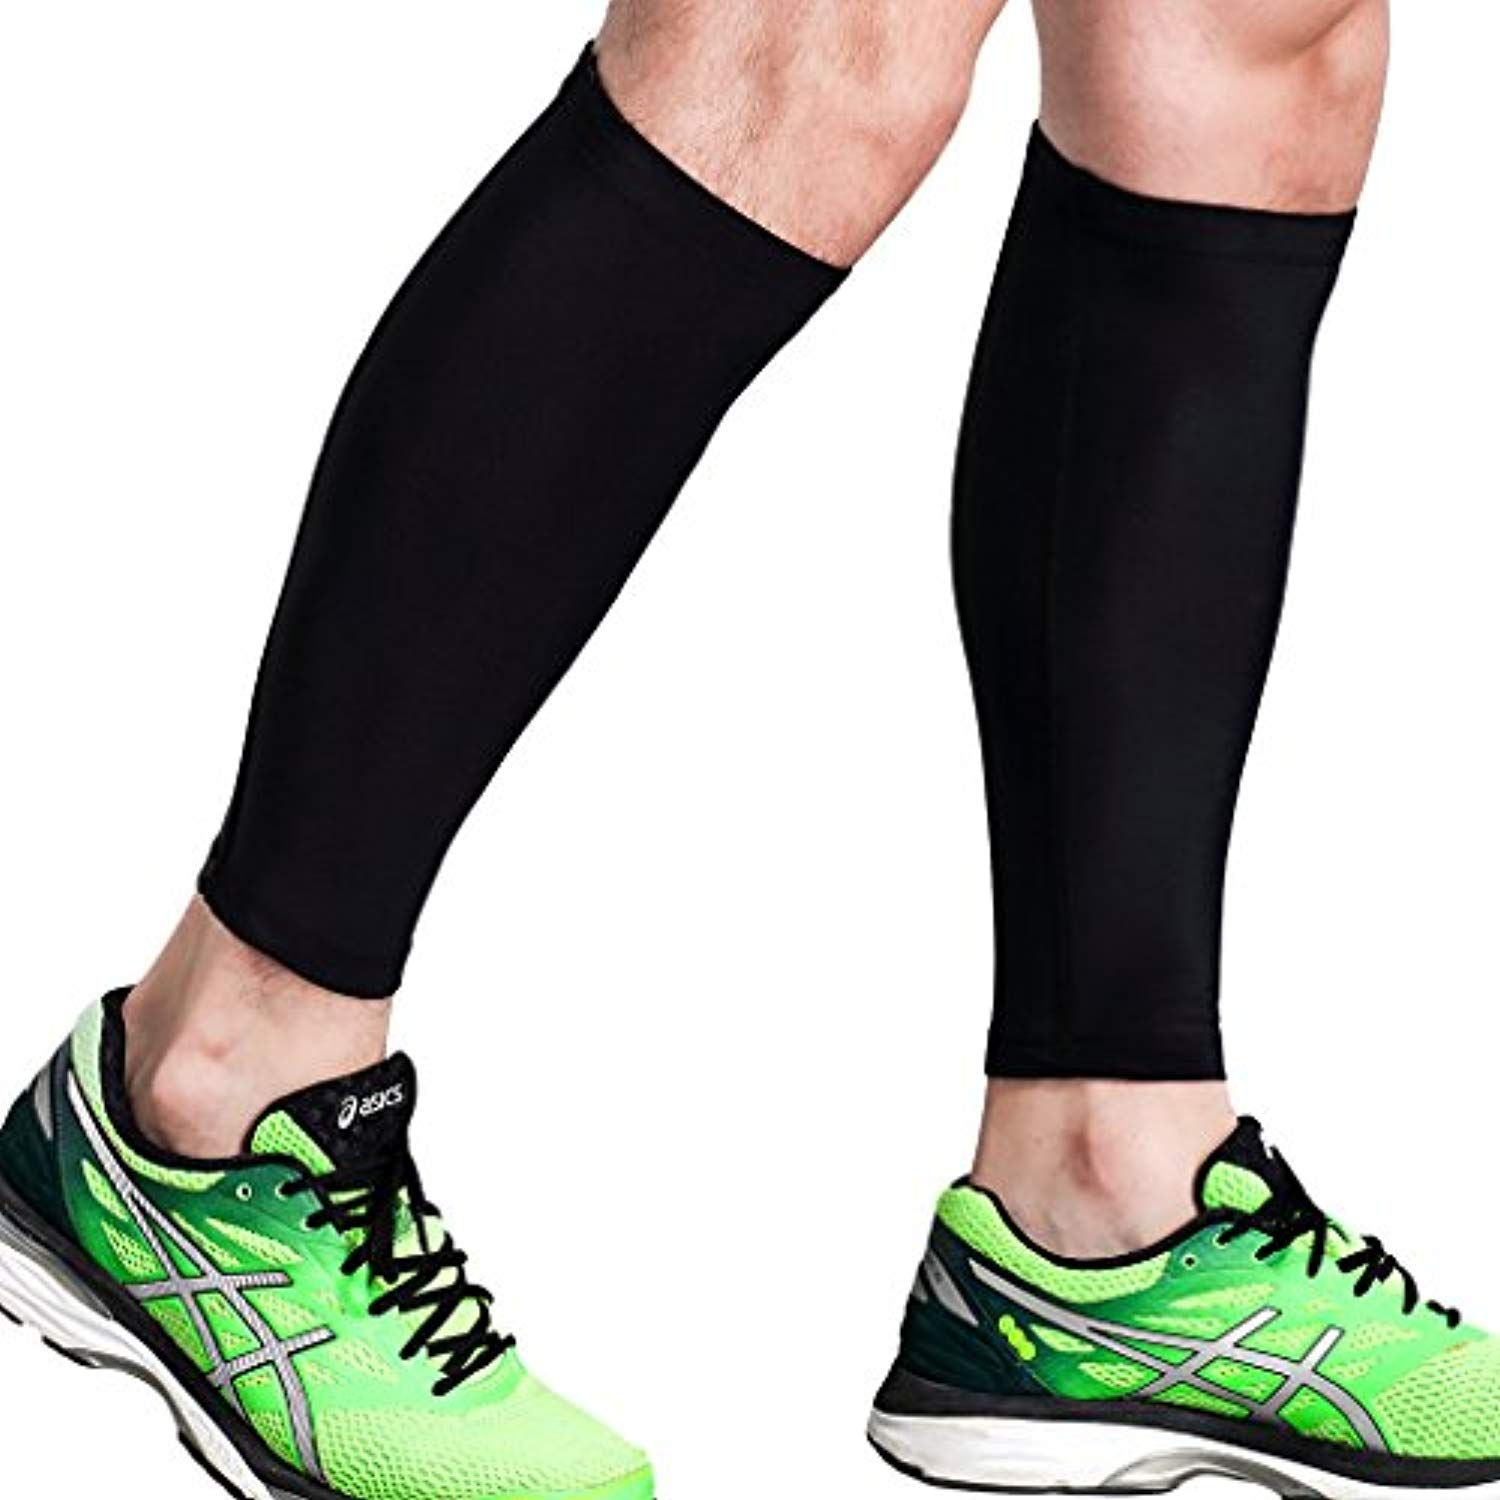 eaf32d68ea Calf Compression Sleeve - Leg Compression Socks for Shin Splint, Calf Pain  Relief - Men, Women, and Runners - Calf Guard for Running, Cycling,  Maternity, ...